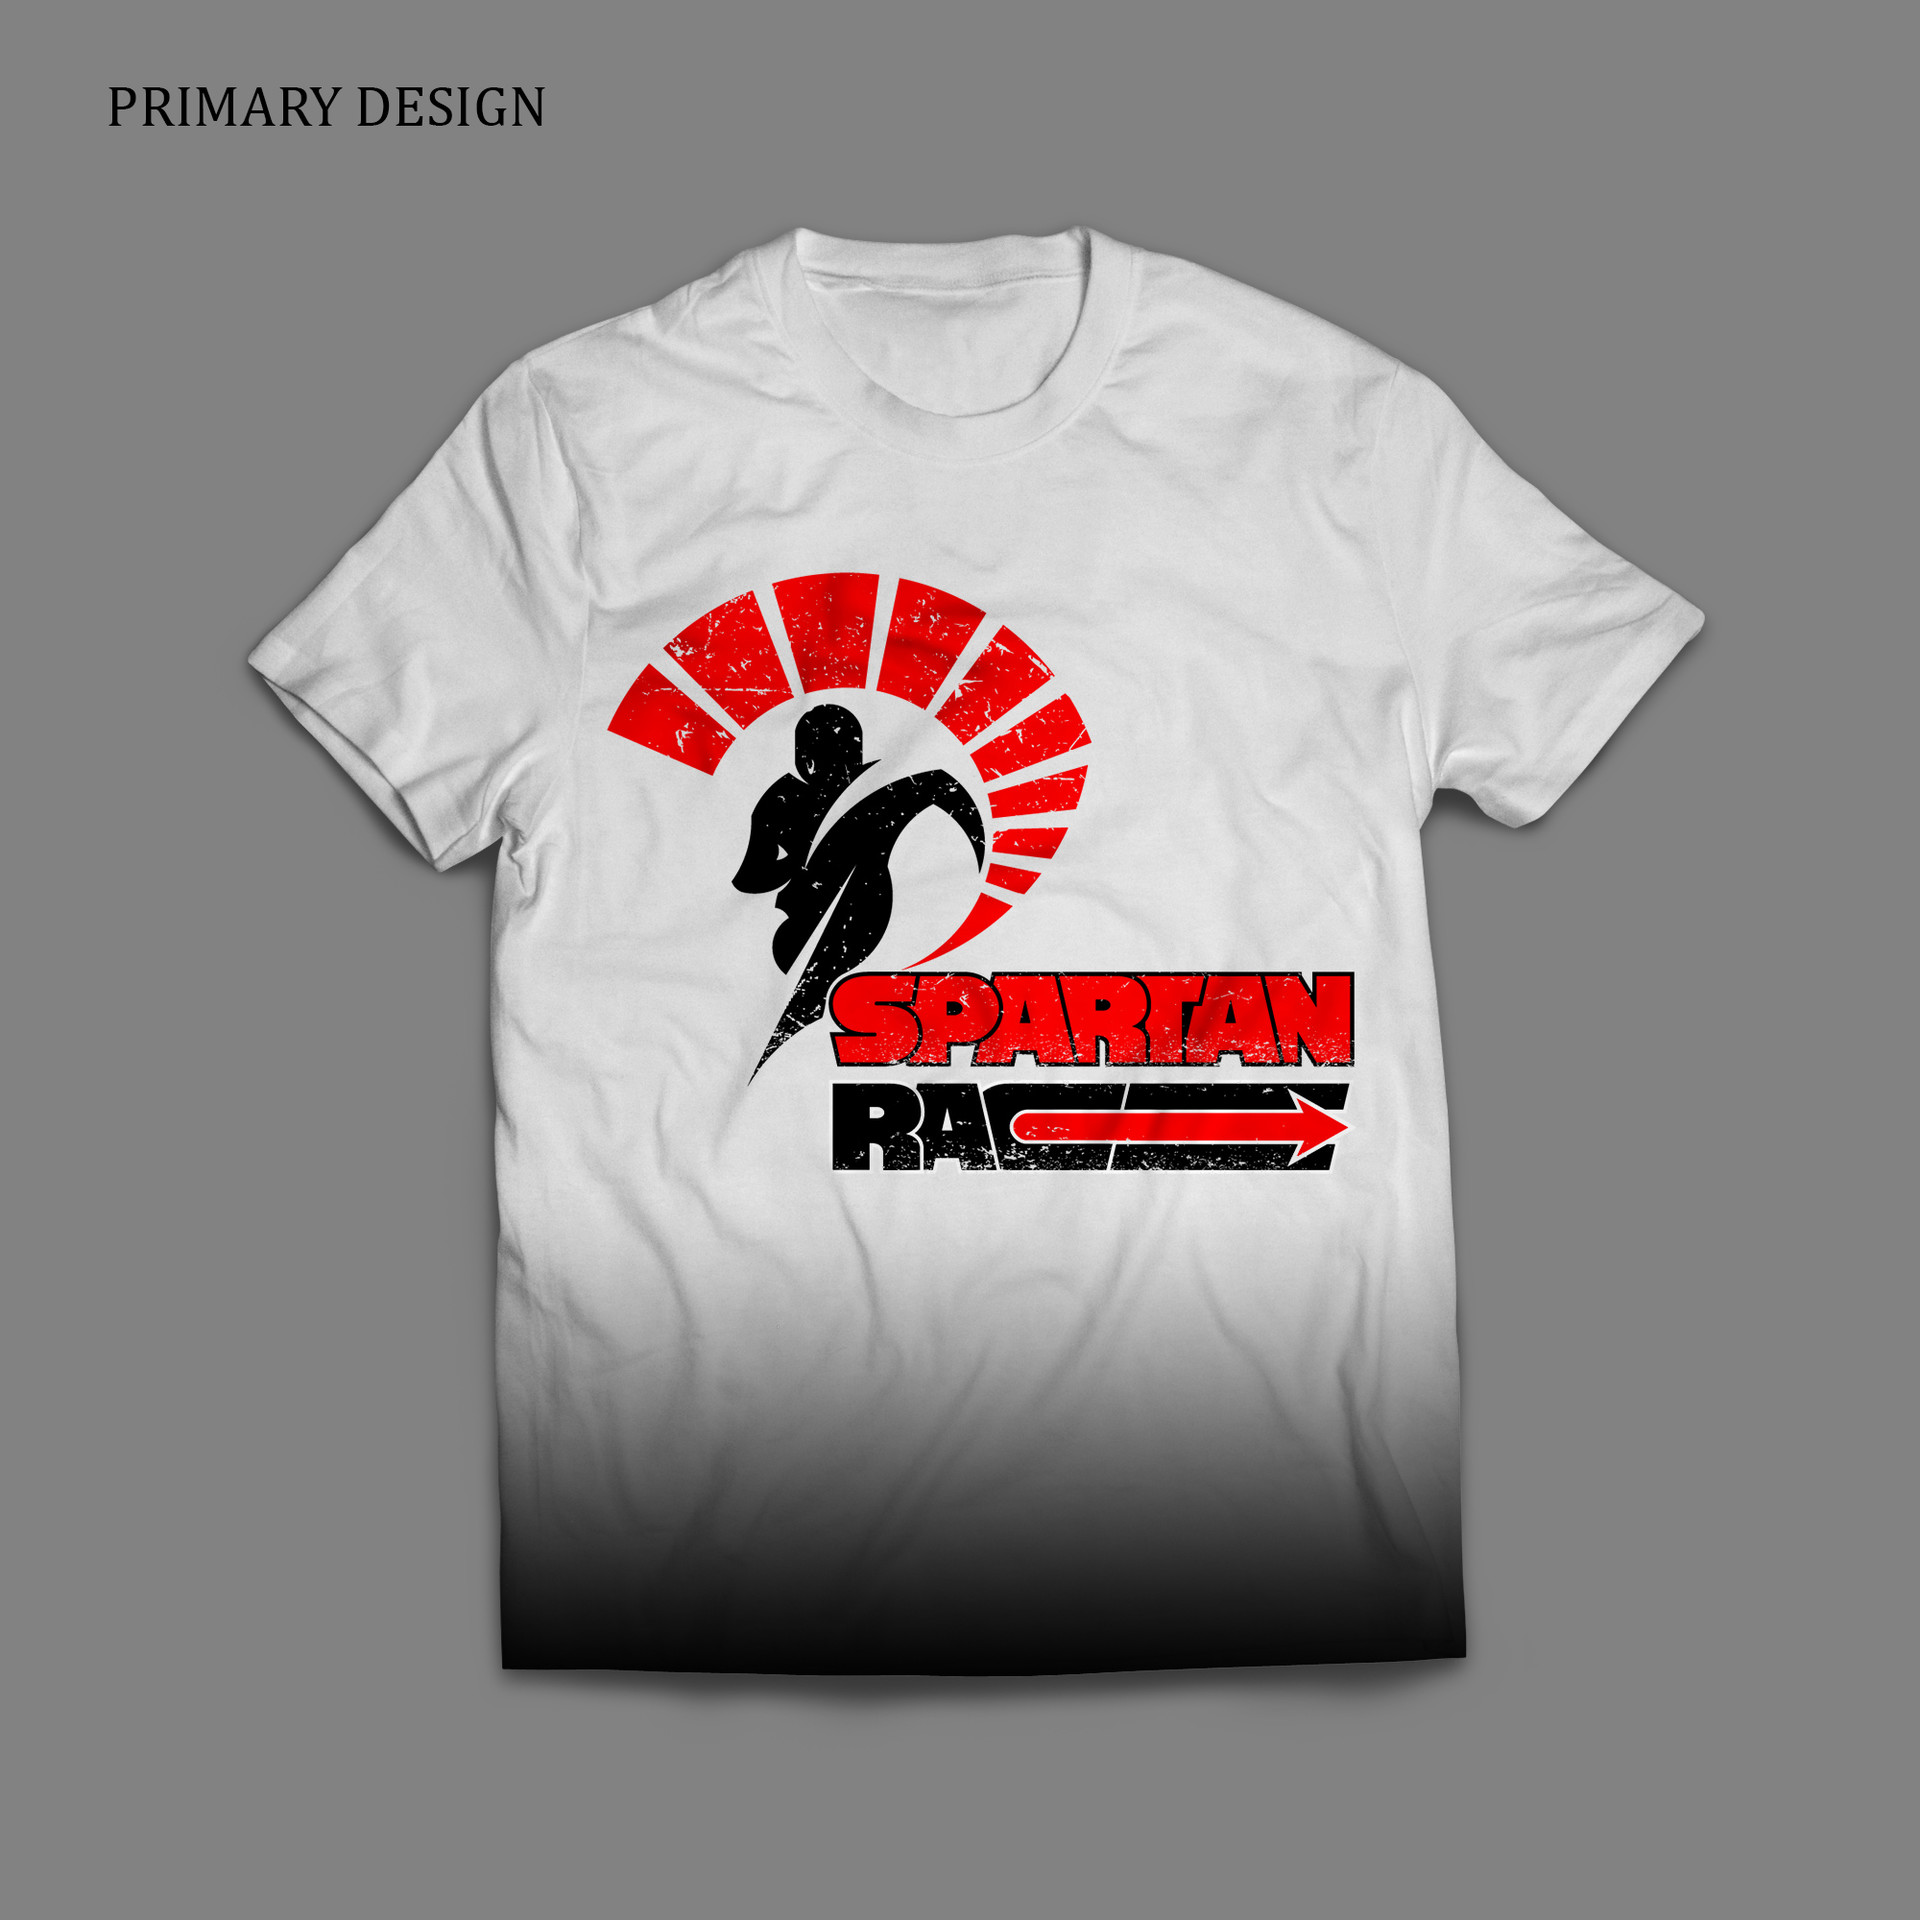 Richard t white jr spartanrace tshirtmockup 01